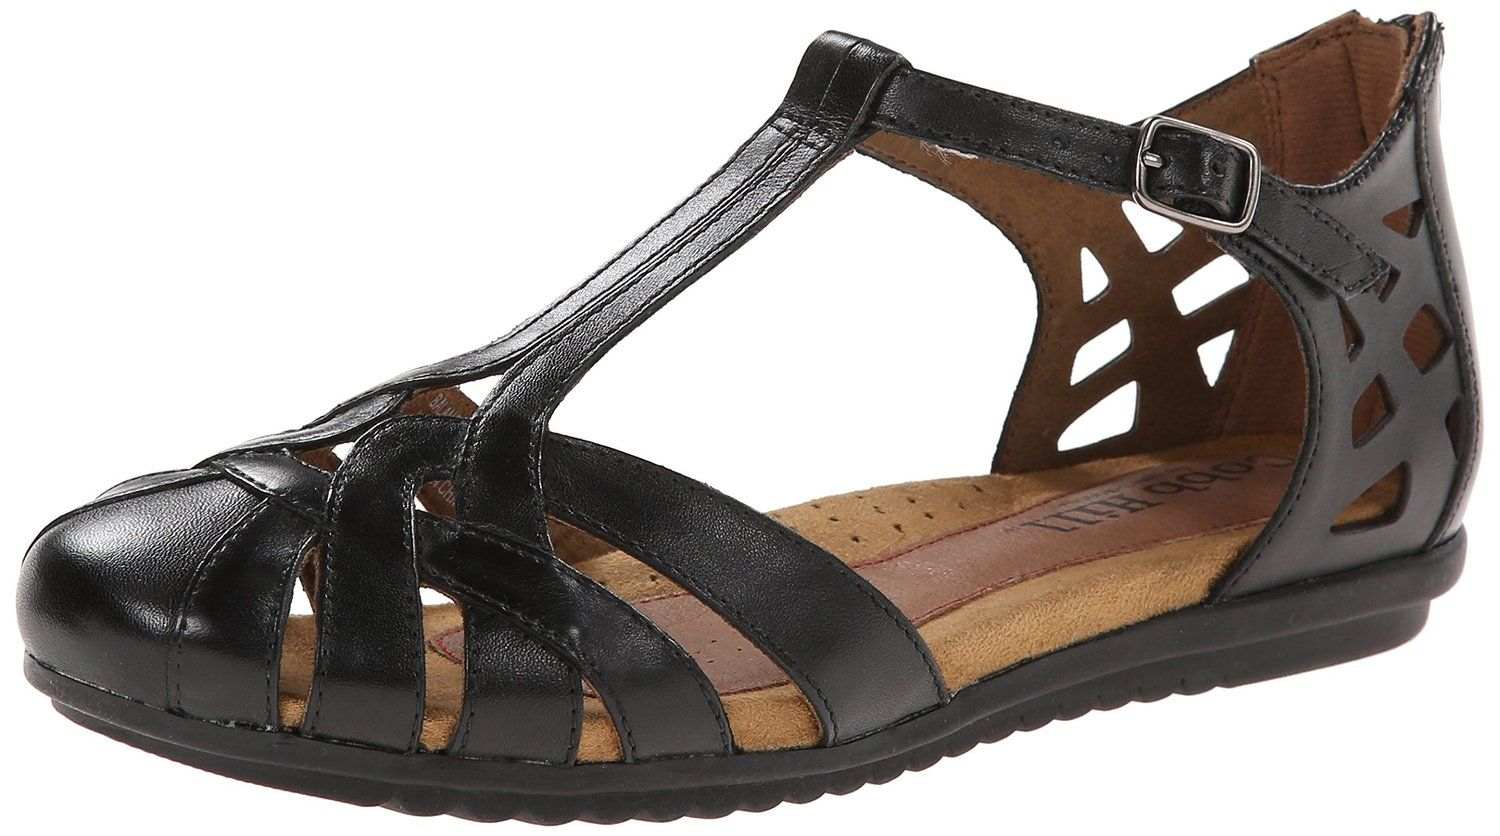 Rockport Cobb Hill Women S Ireland Ch Enclosed Dress Sandal Quickly View This Special Product Click The I Womens Sandals Flat Dress Sandals Clarks Women S [ 836 x 1500 Pixel ]